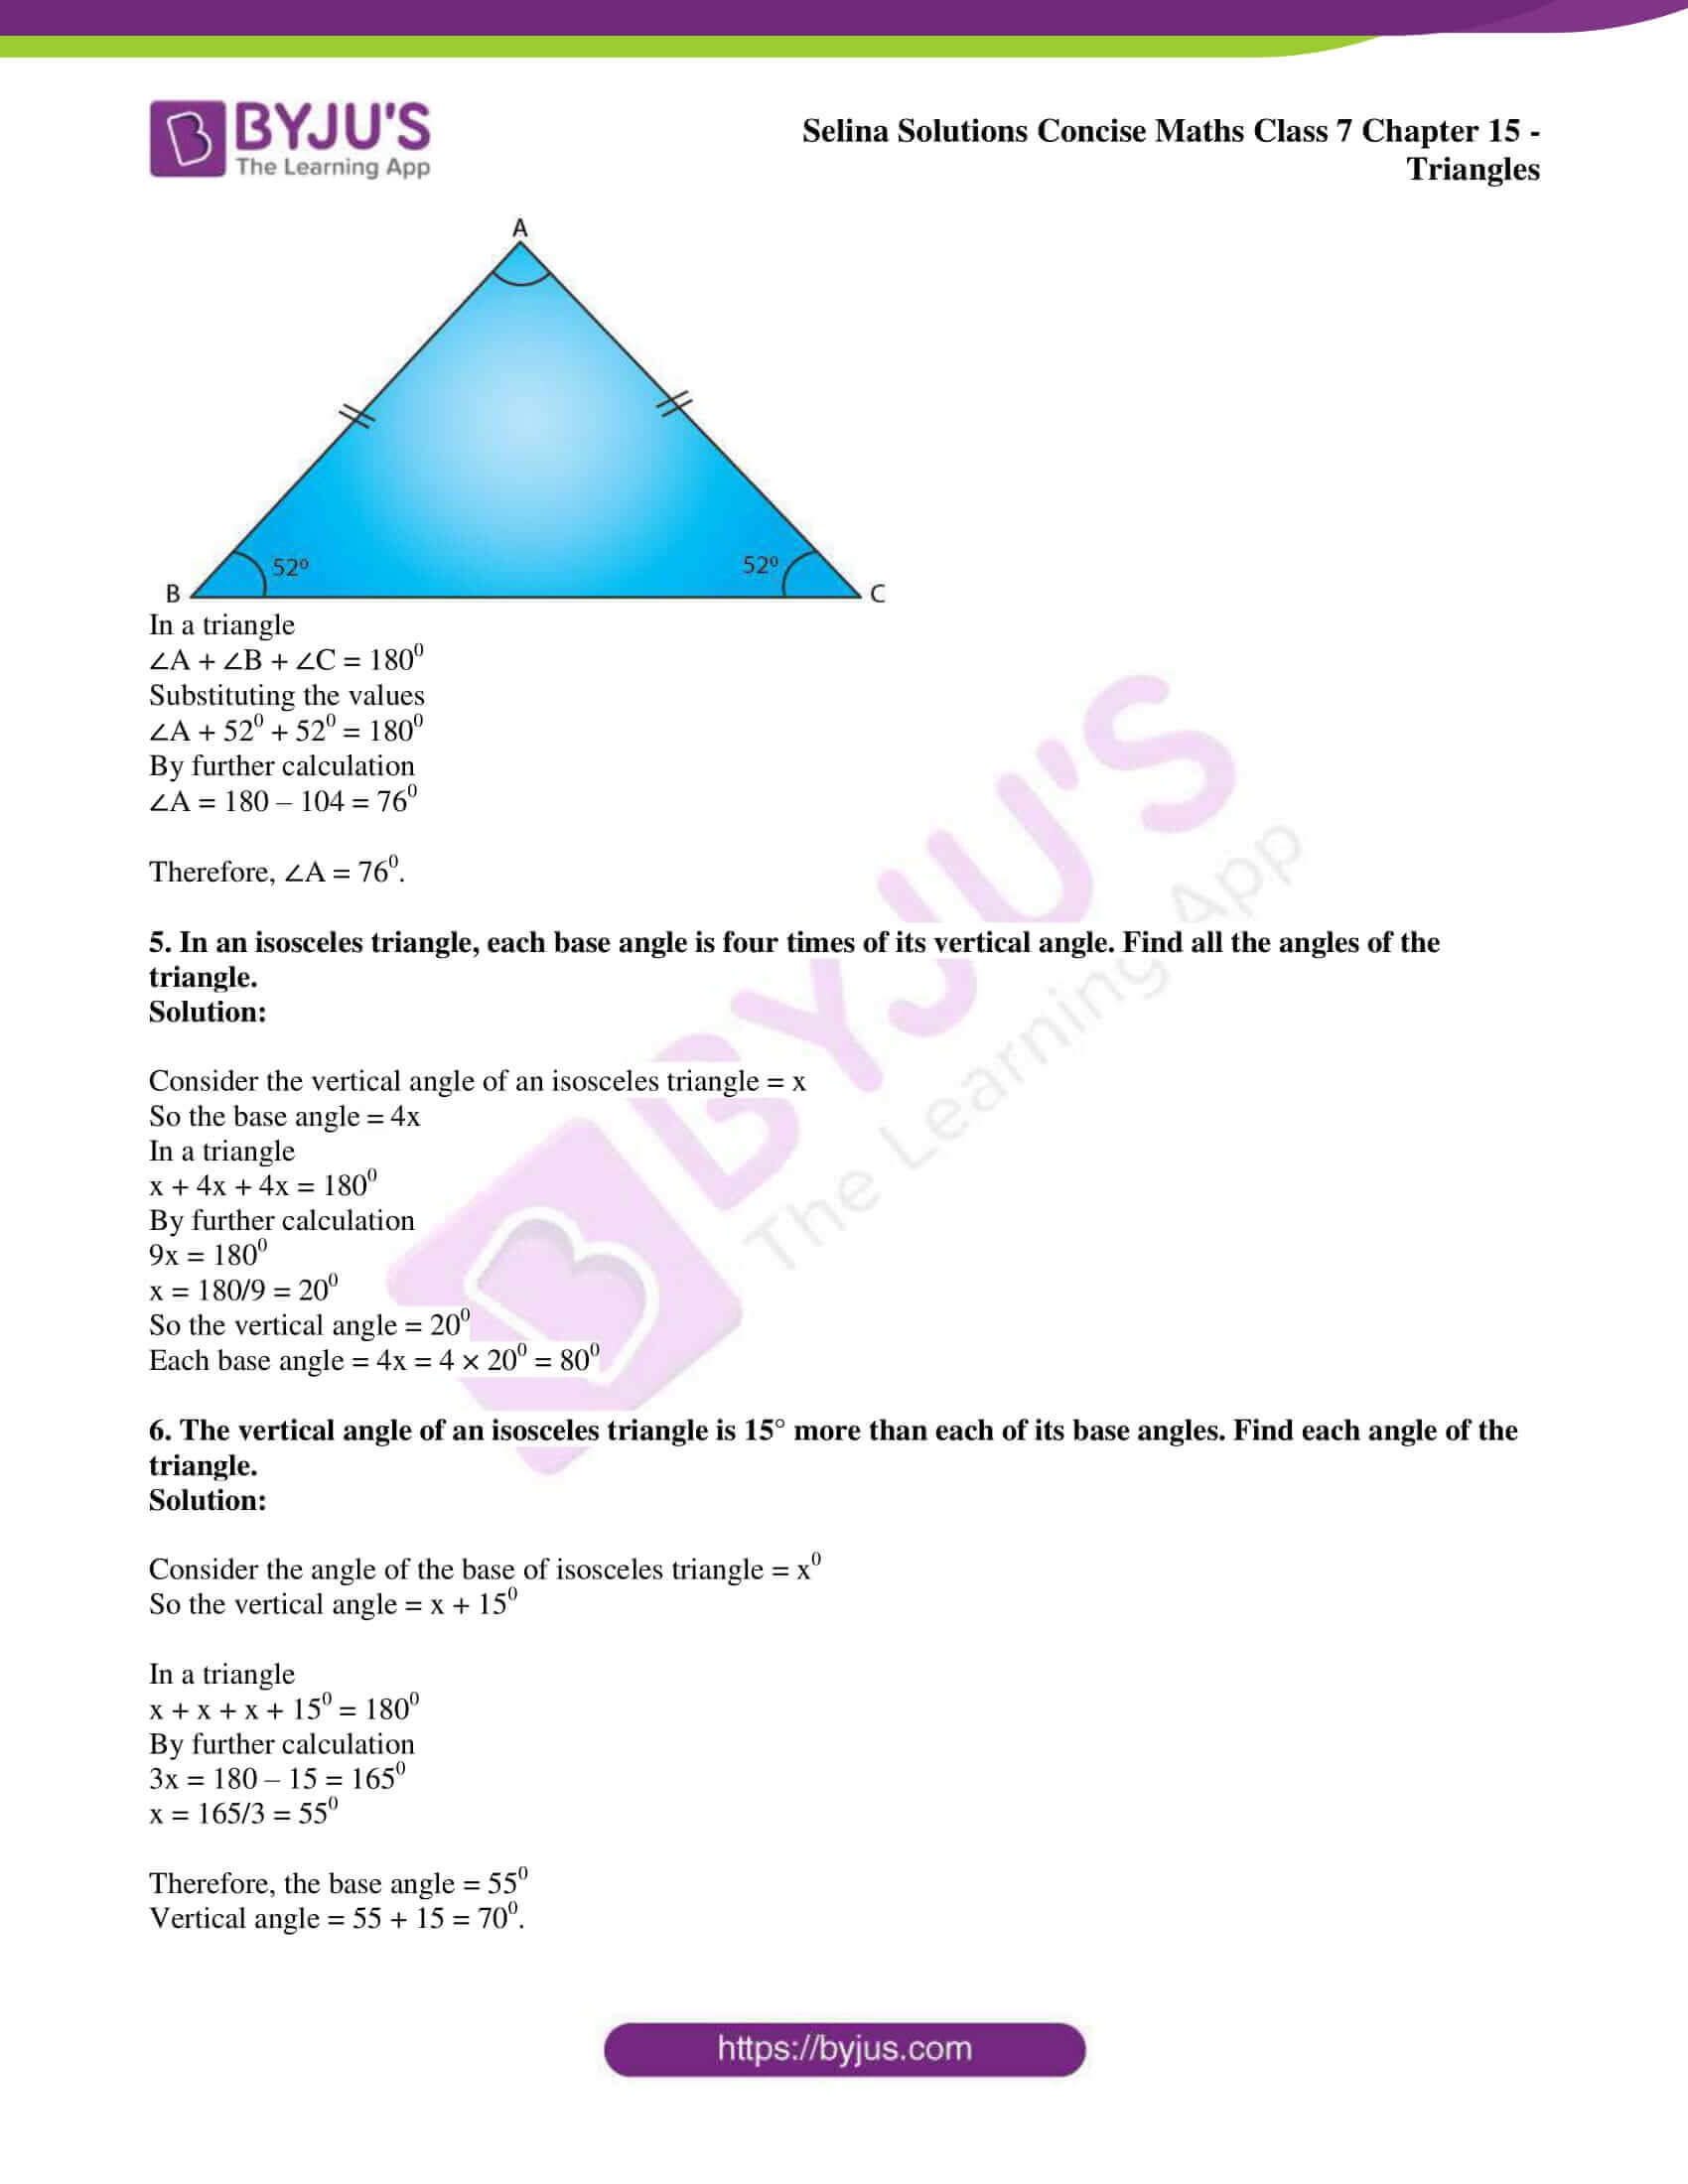 selina sol concise maths class 7 chapter 15 ex b 06